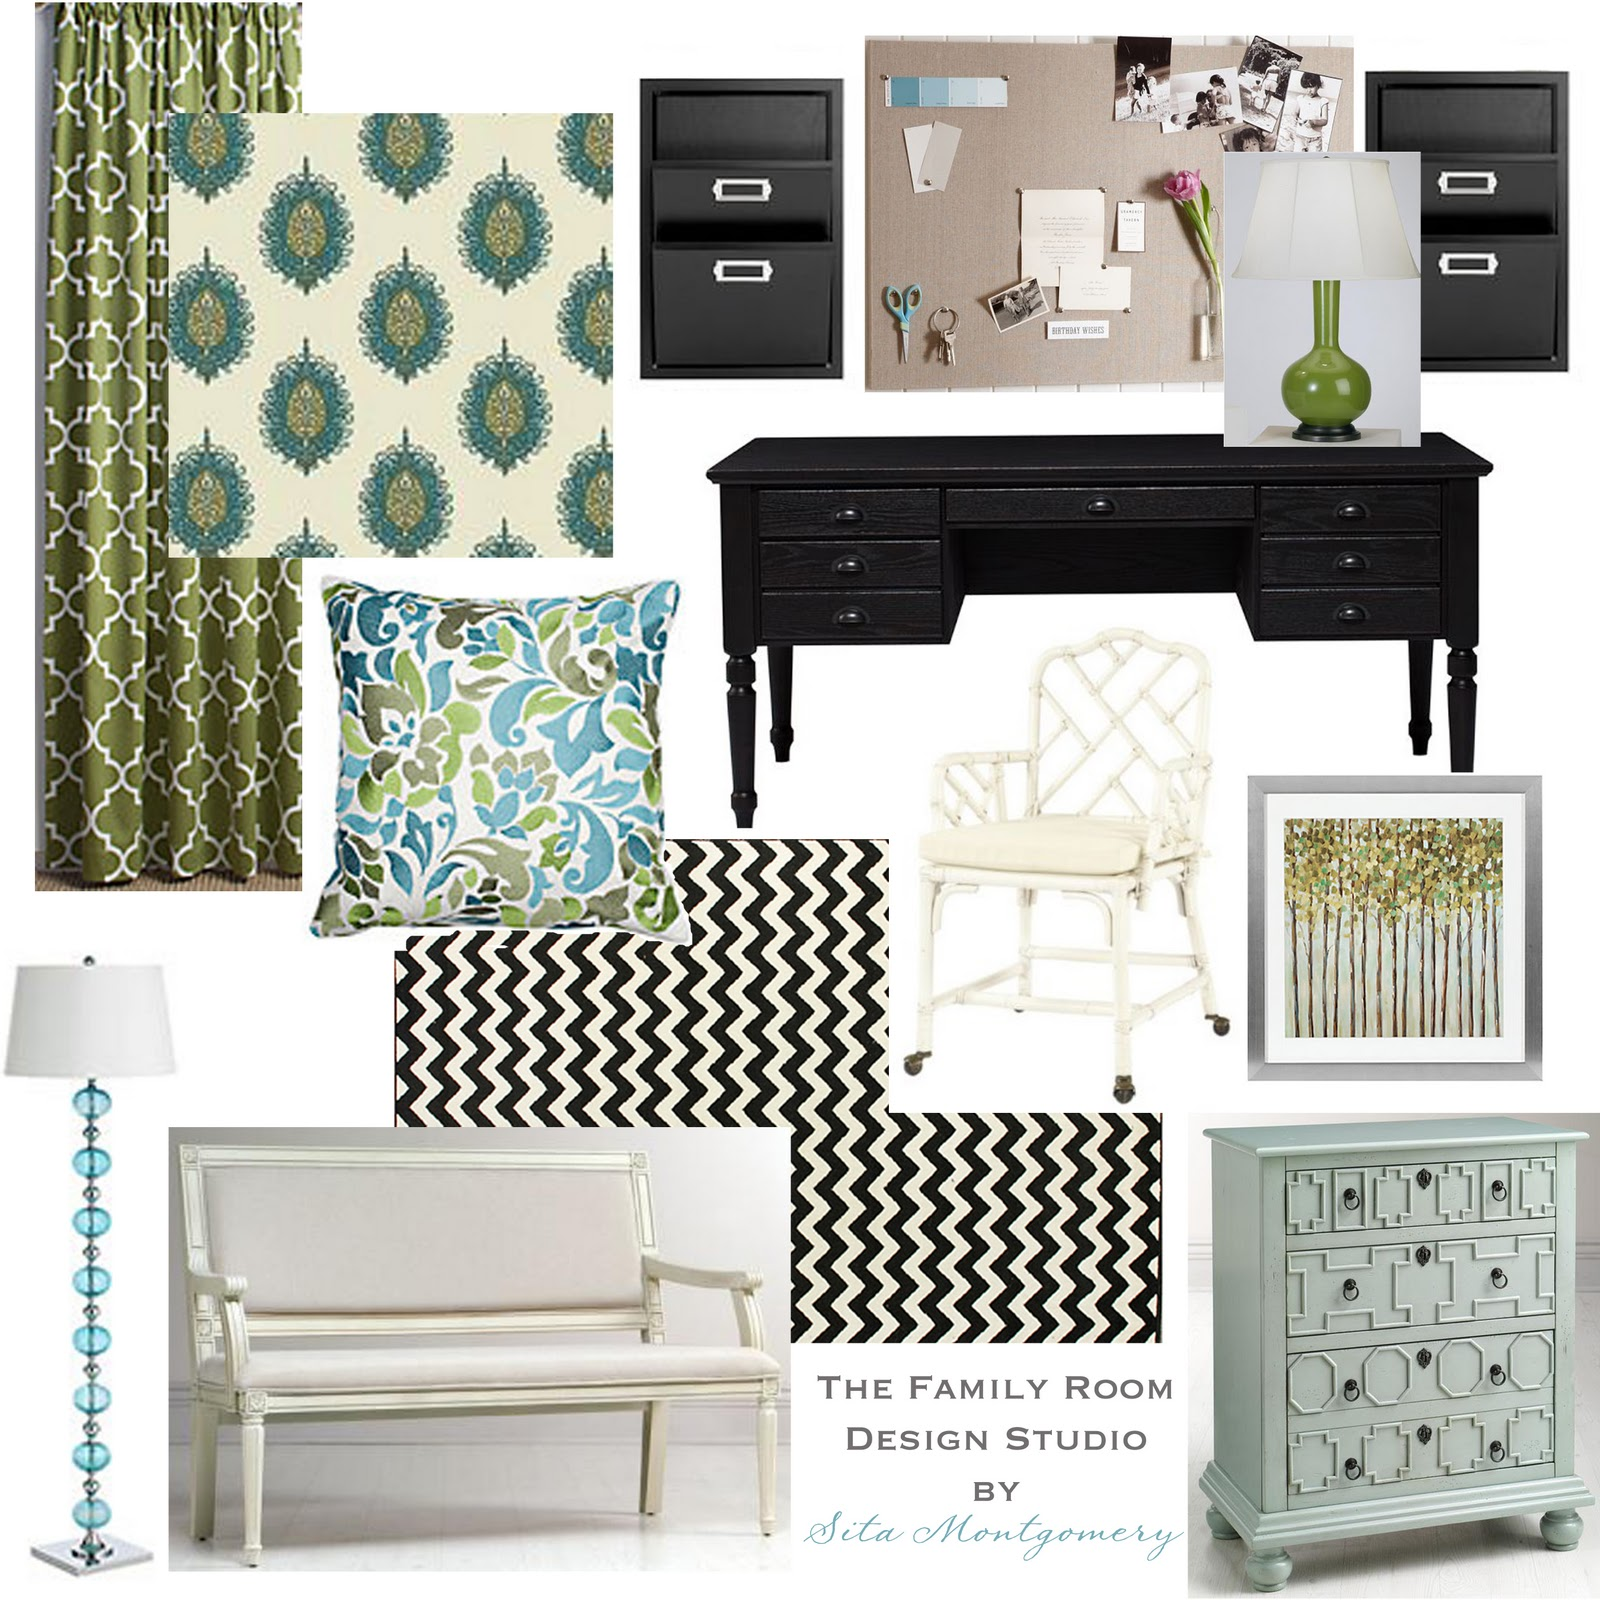 Room e design giveaway sita montgomery interiors for Office design board